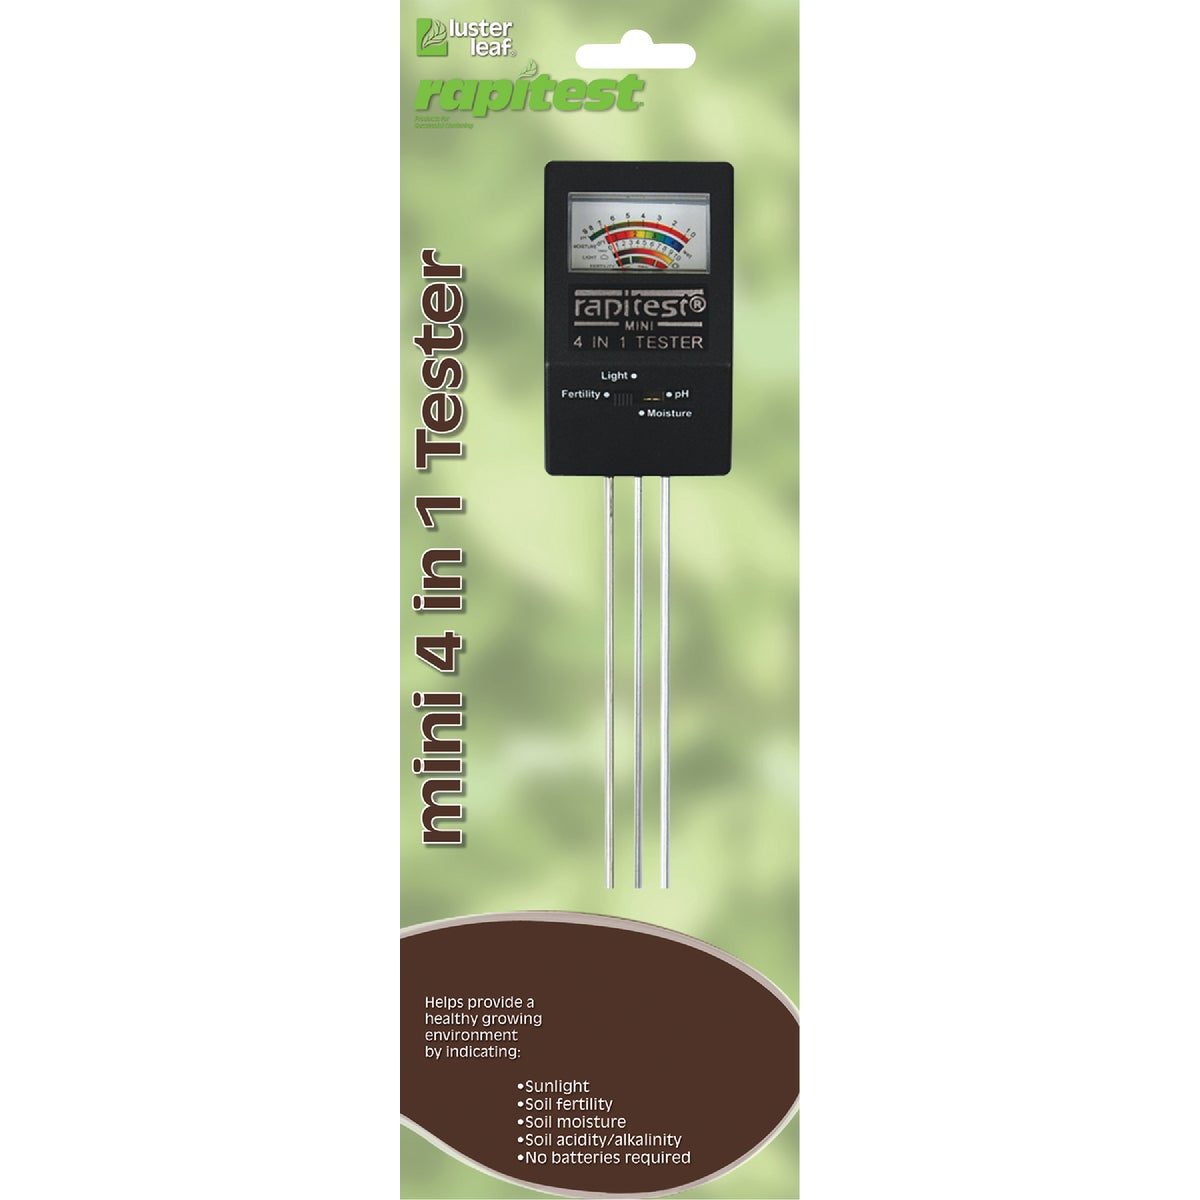 4IN1 MINI PLANT TESTER - 1818 by Luster Leaf Prod Inc